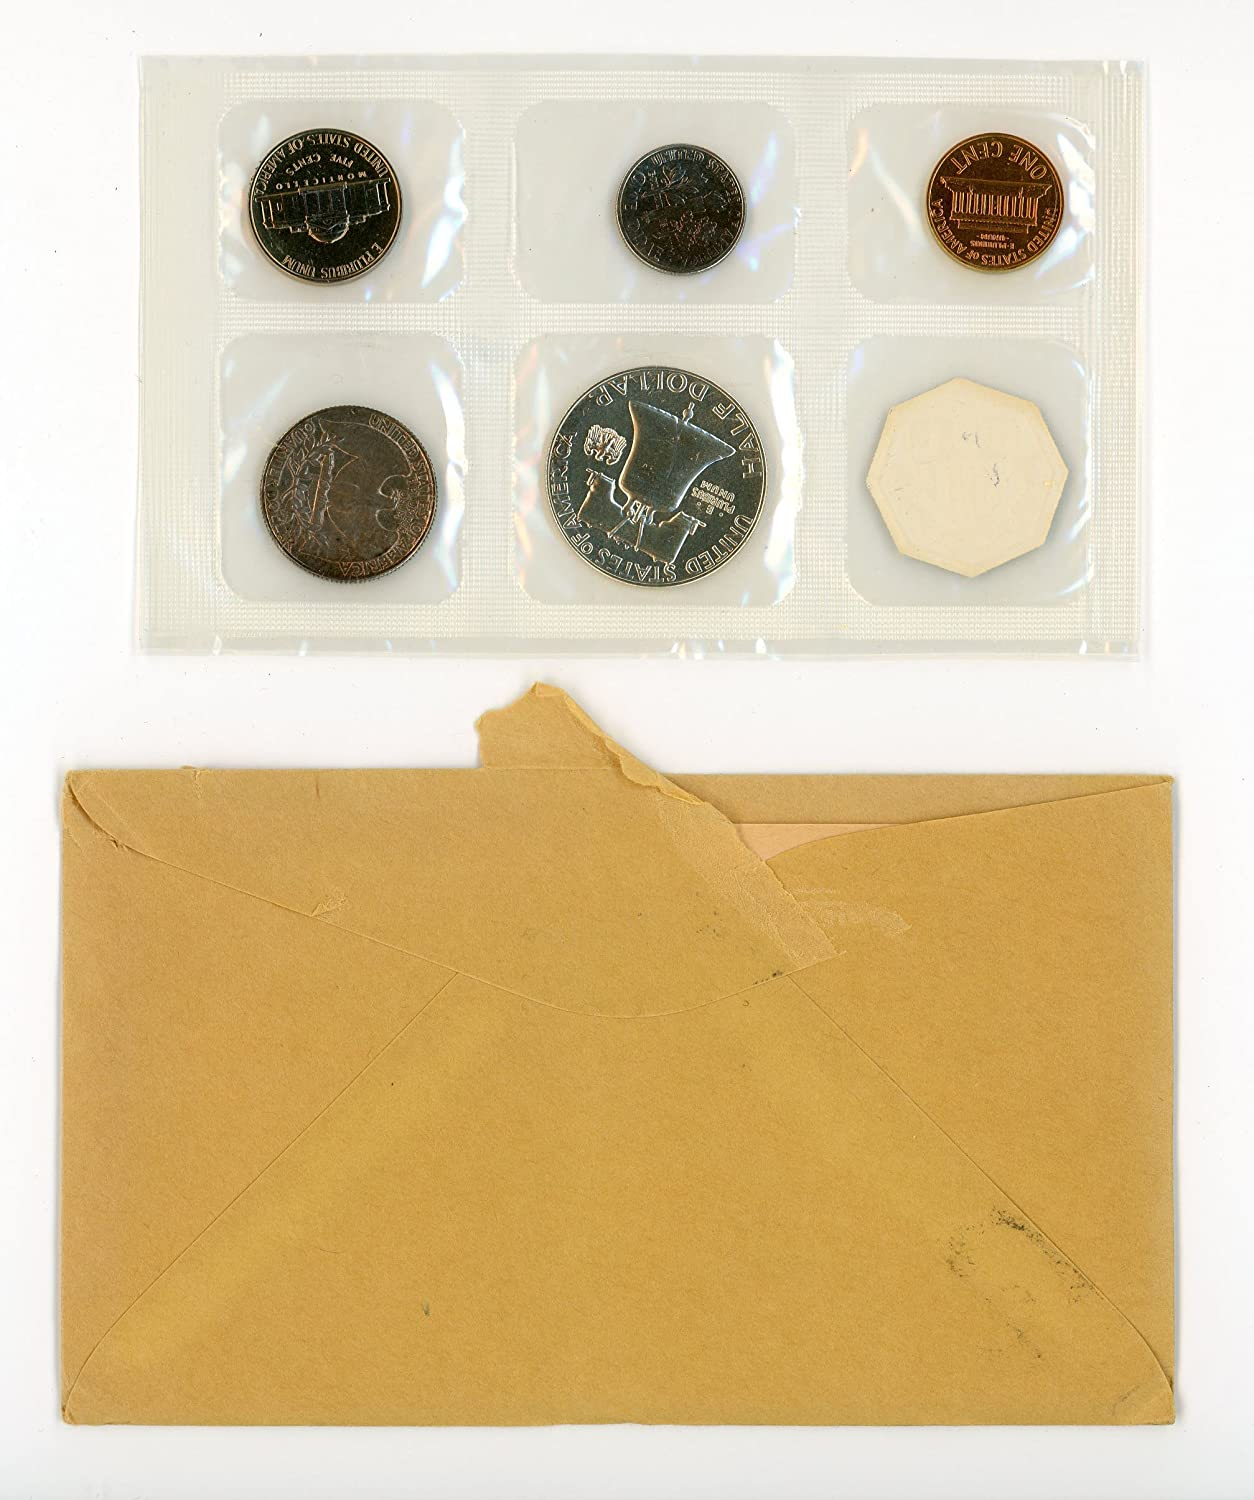 1964 American Silver Proof Set Gem Coins by the US Mint Opened Envelope